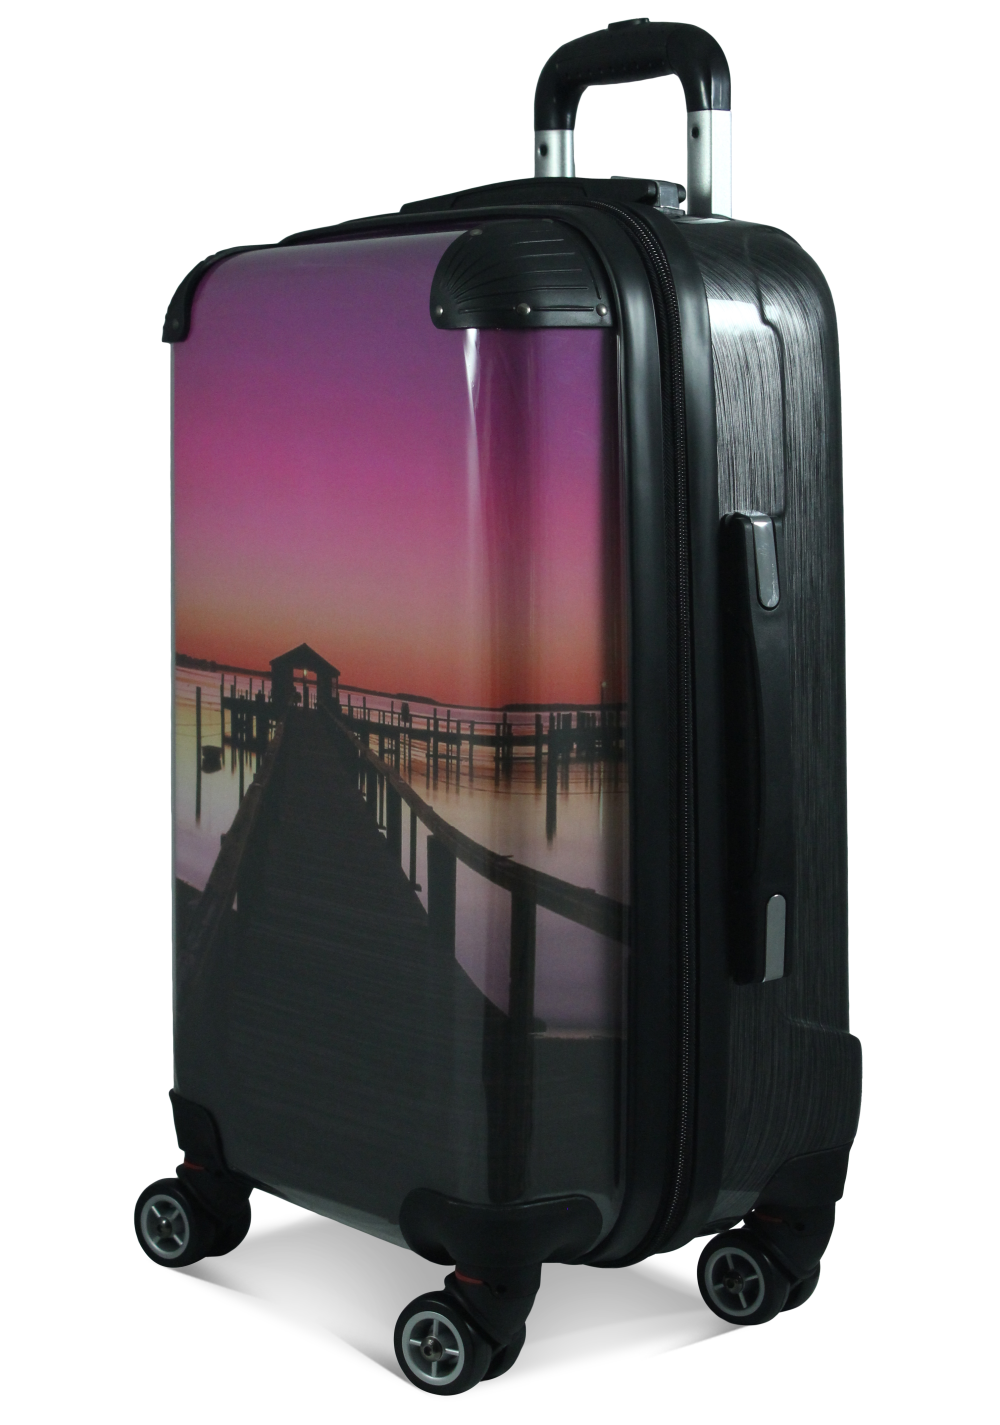 MyFly Bag Personalized Luggage | Bucket List | Pinterest ...